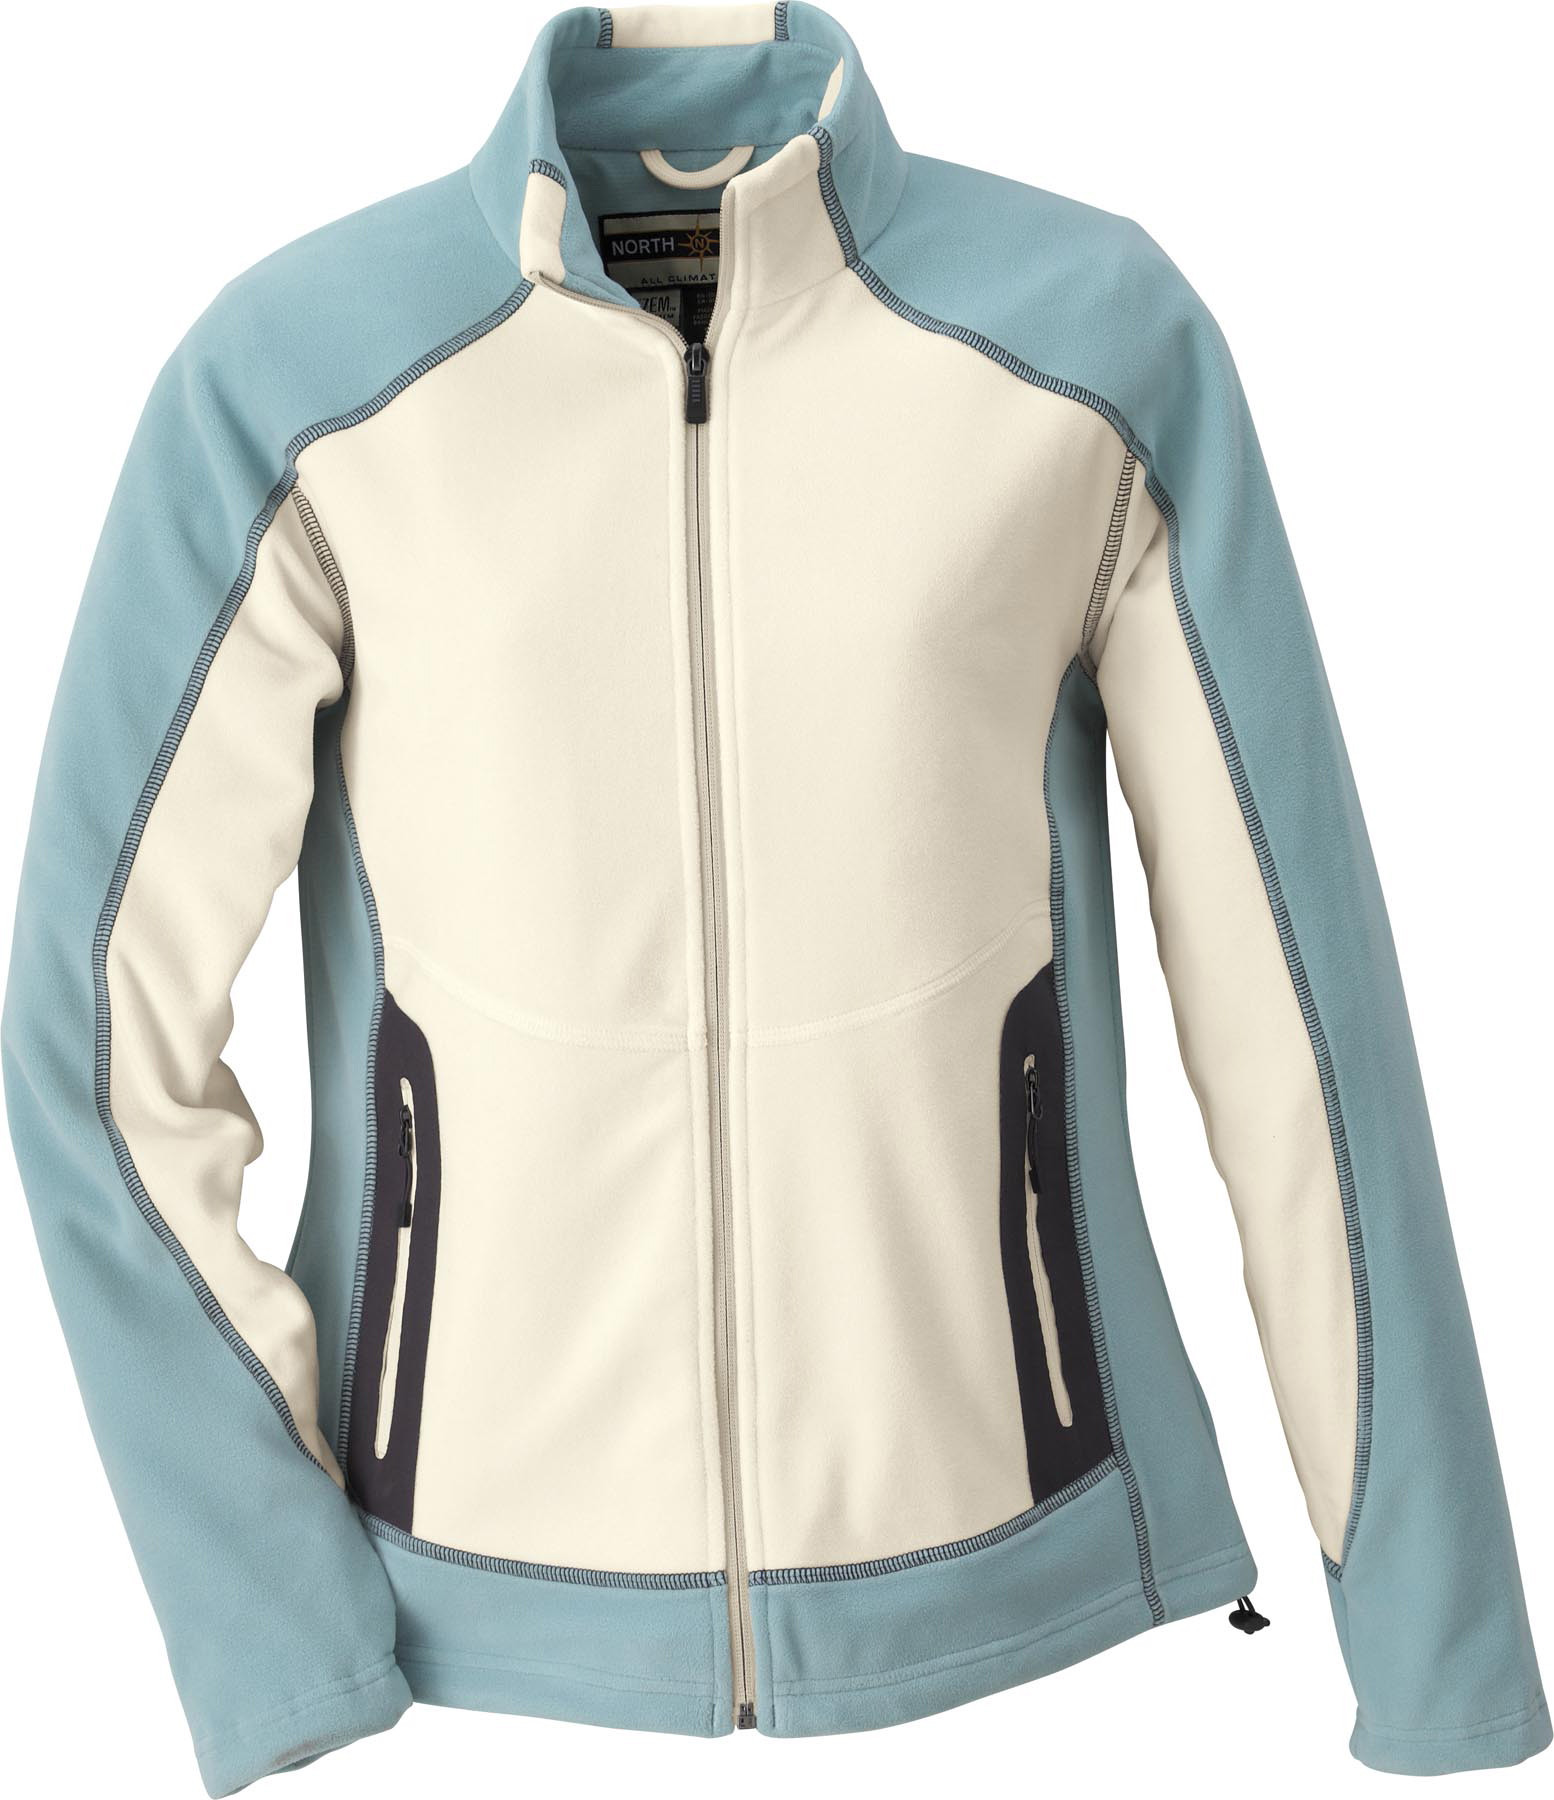 Ash City Microfleece 78056 - Ladies' Jacket With Windsmarttm ...